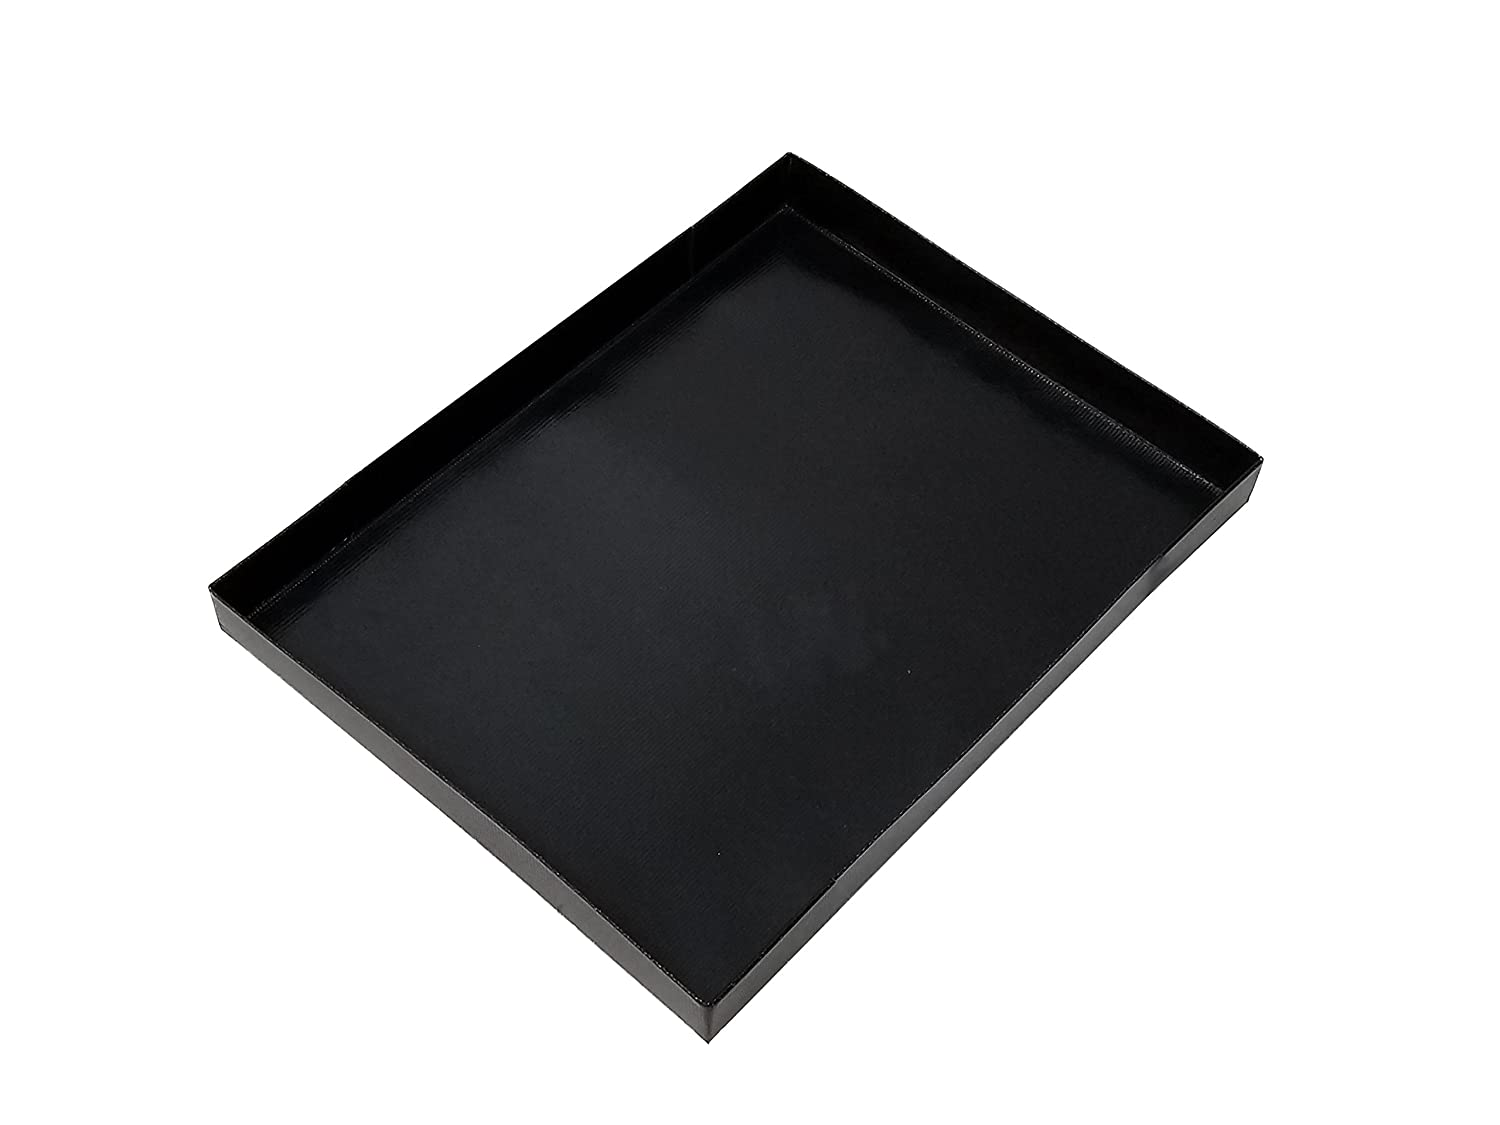 """8.5"""" x 11.5"""" PTFE Solid Oven basket for TurboChef, Merrychef, and Amana (Replaces I1-9166)"""